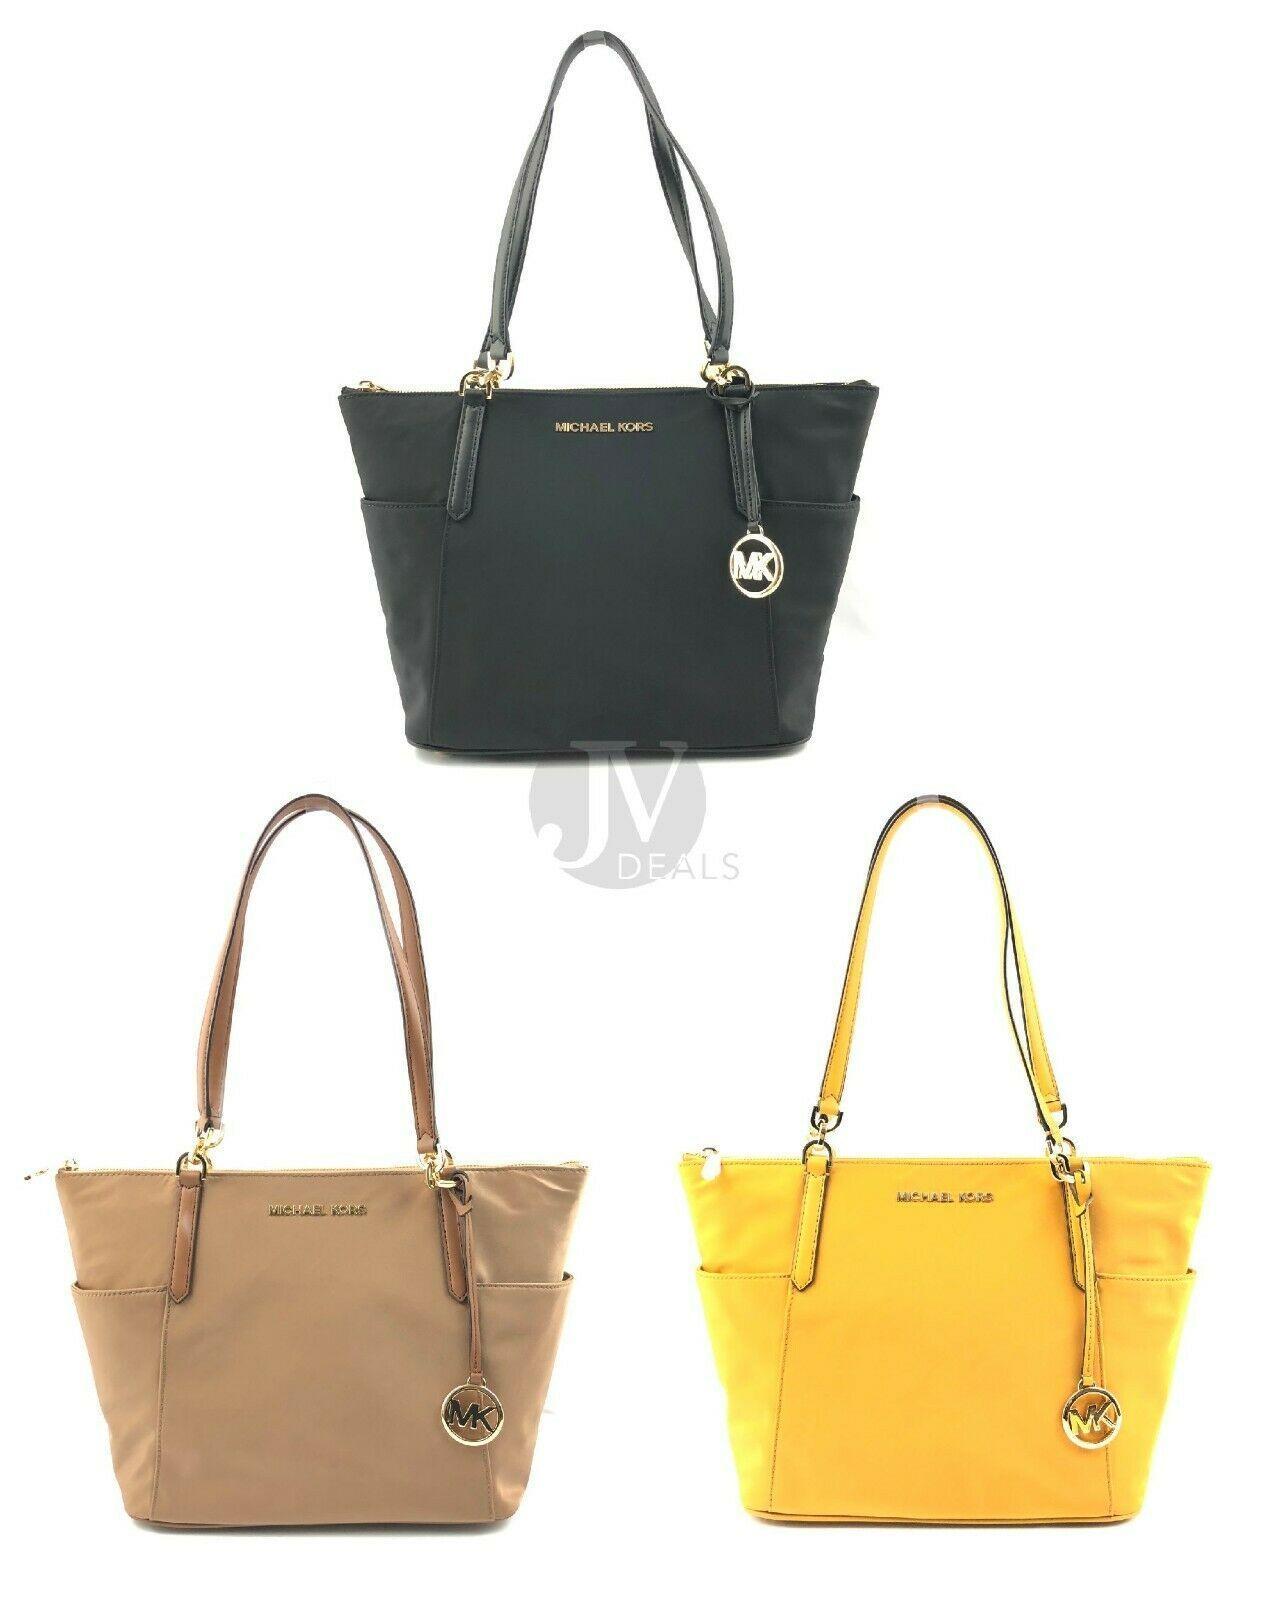 Primary image for NEW WOMEN'S MICHAEL KORS BEDFORD LARGE EAST WEST TOP ZIP NYLON TOTE HAND BAG